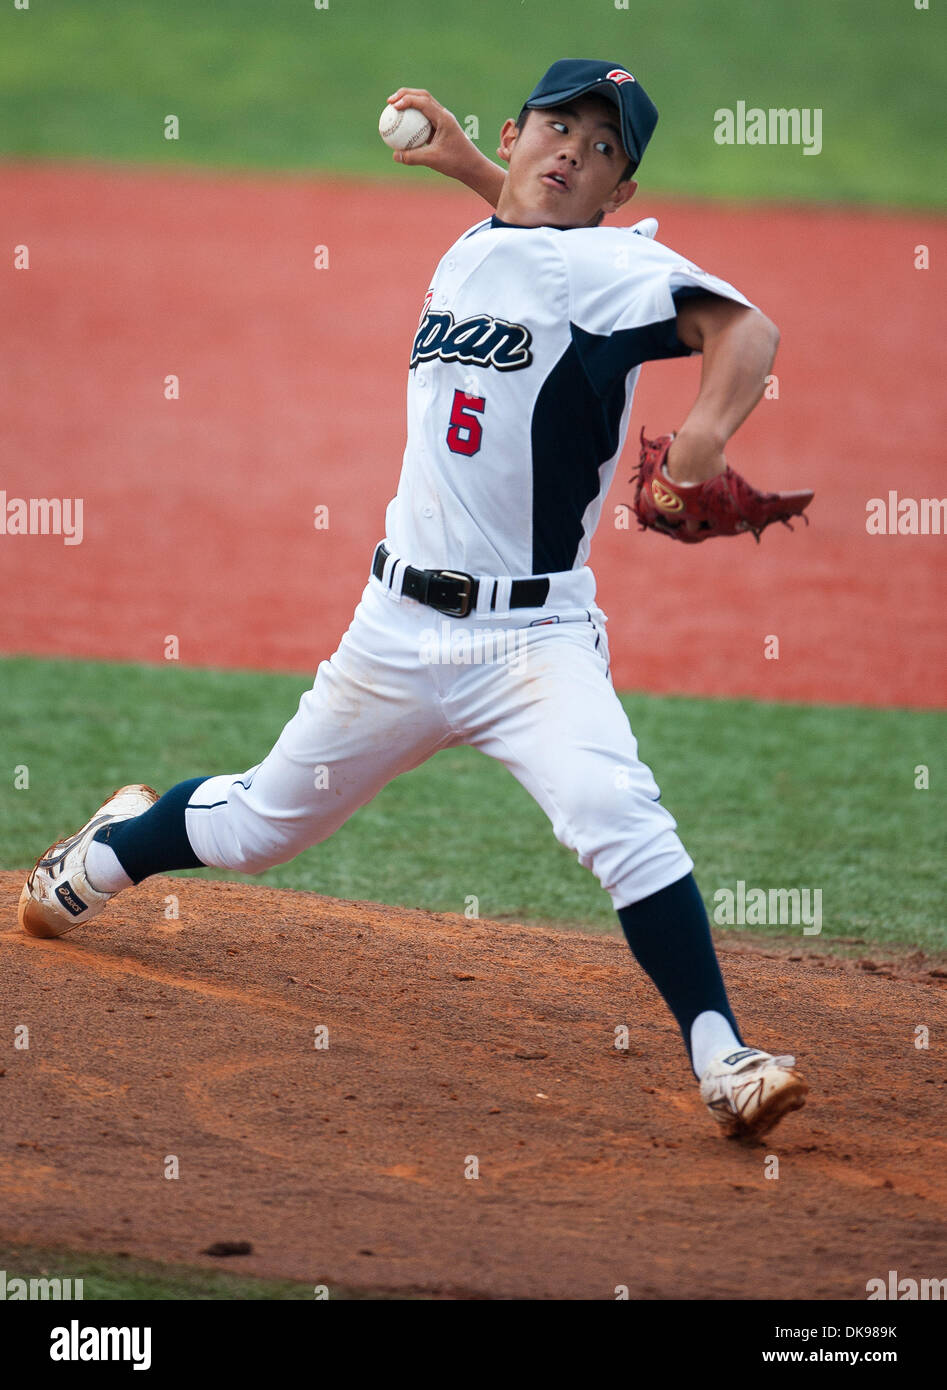 Aug. 13, 2011 - Aberdeen, Maryland, U.S. - Daisuke Sowa, of Japan, pitches during the Cal Ripken World Series in Stock Photo